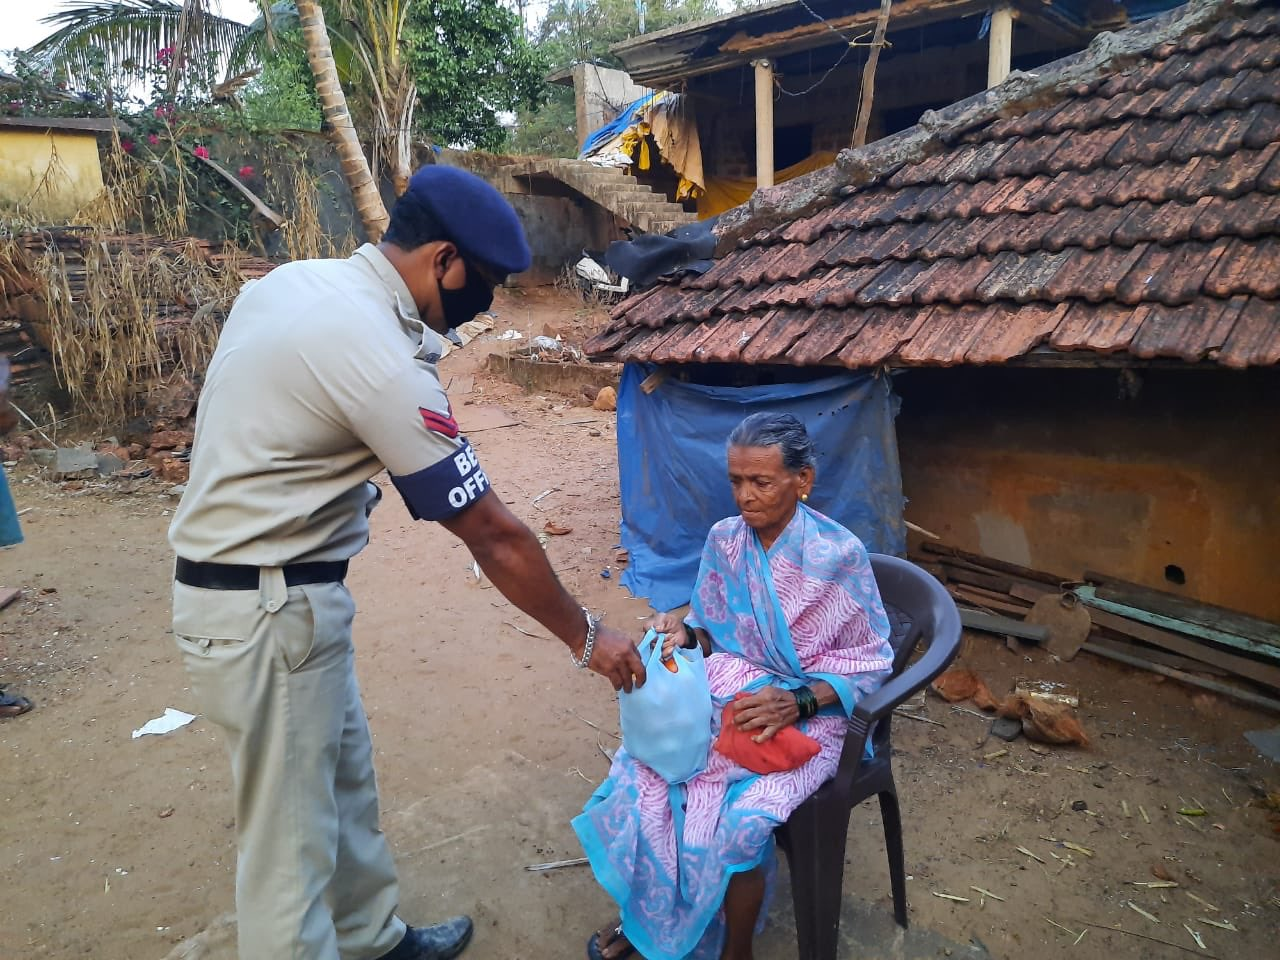 Cuncolim and Canacona Police Beat Staff visited Seniorcitizens and helped them with essentials